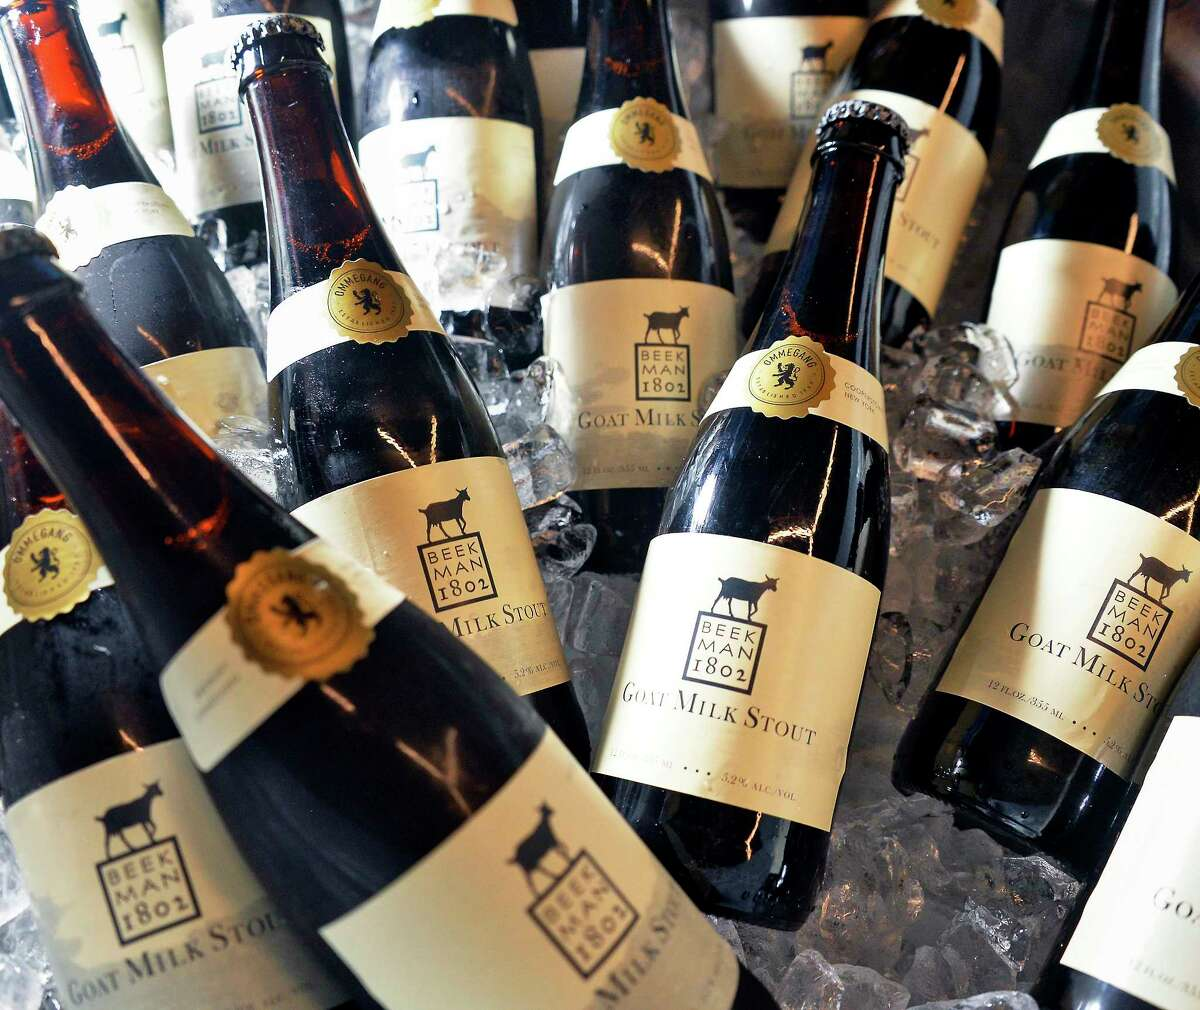 Beekman 1802 and Brewery Ommegang's collaboration limited edition Goat Milk Stout Beer Wednesday Sept. 5, 2018 in Schenectady, NY. (John Carl D'Annibale/Times Union)